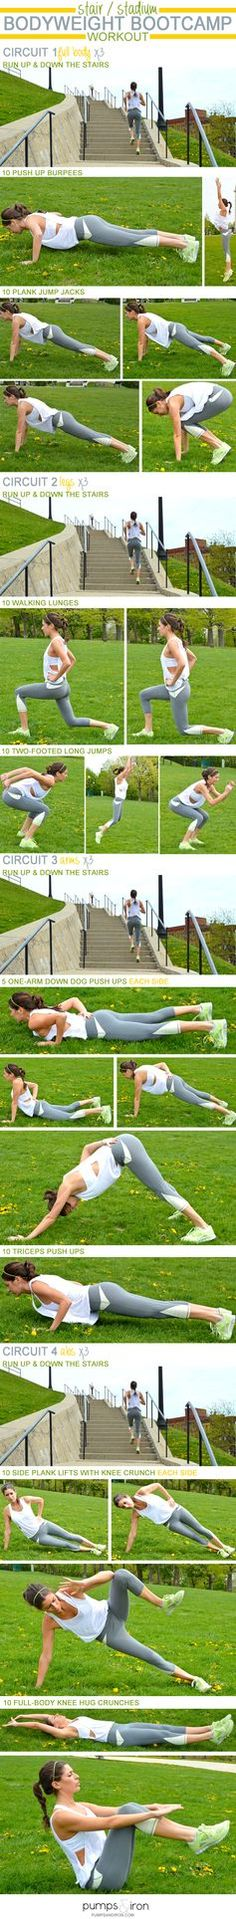 Stair/Stadium Bodyweight Bootcamp Workout  #circuits #stairs #fitness #workout #exercise